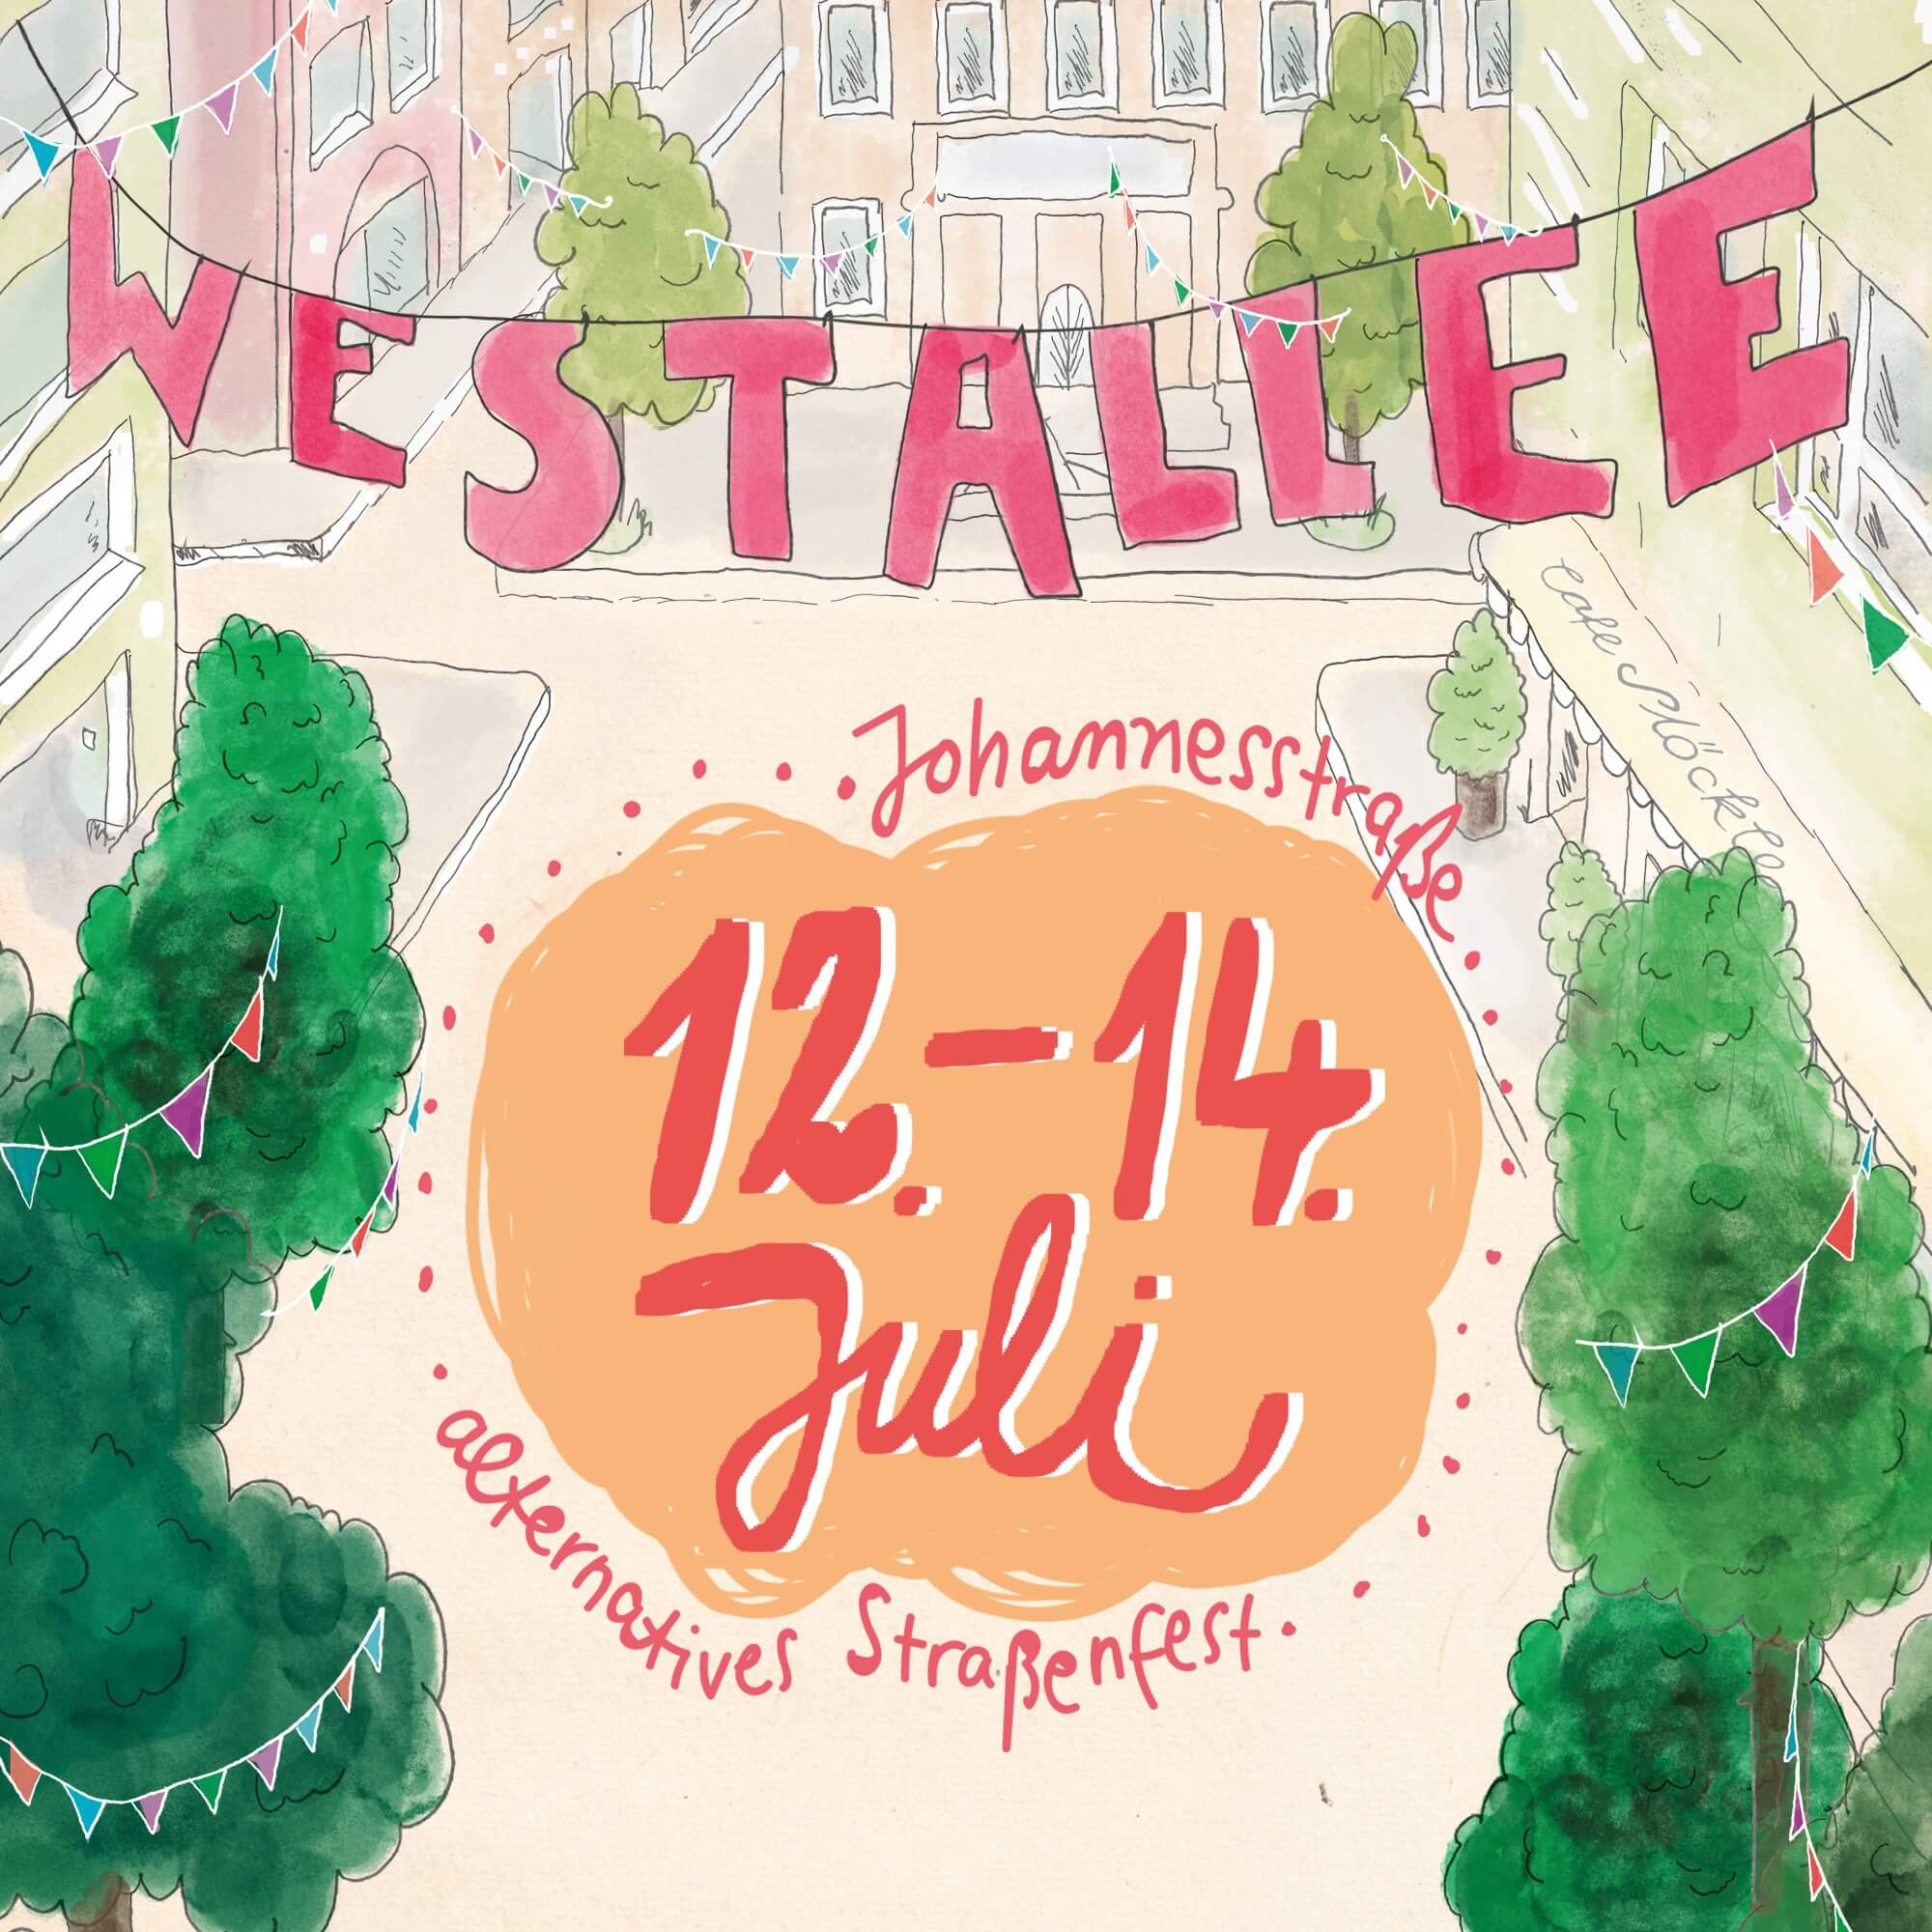 Westallee - alternatives Straßenfest im Stuttgarter Westen